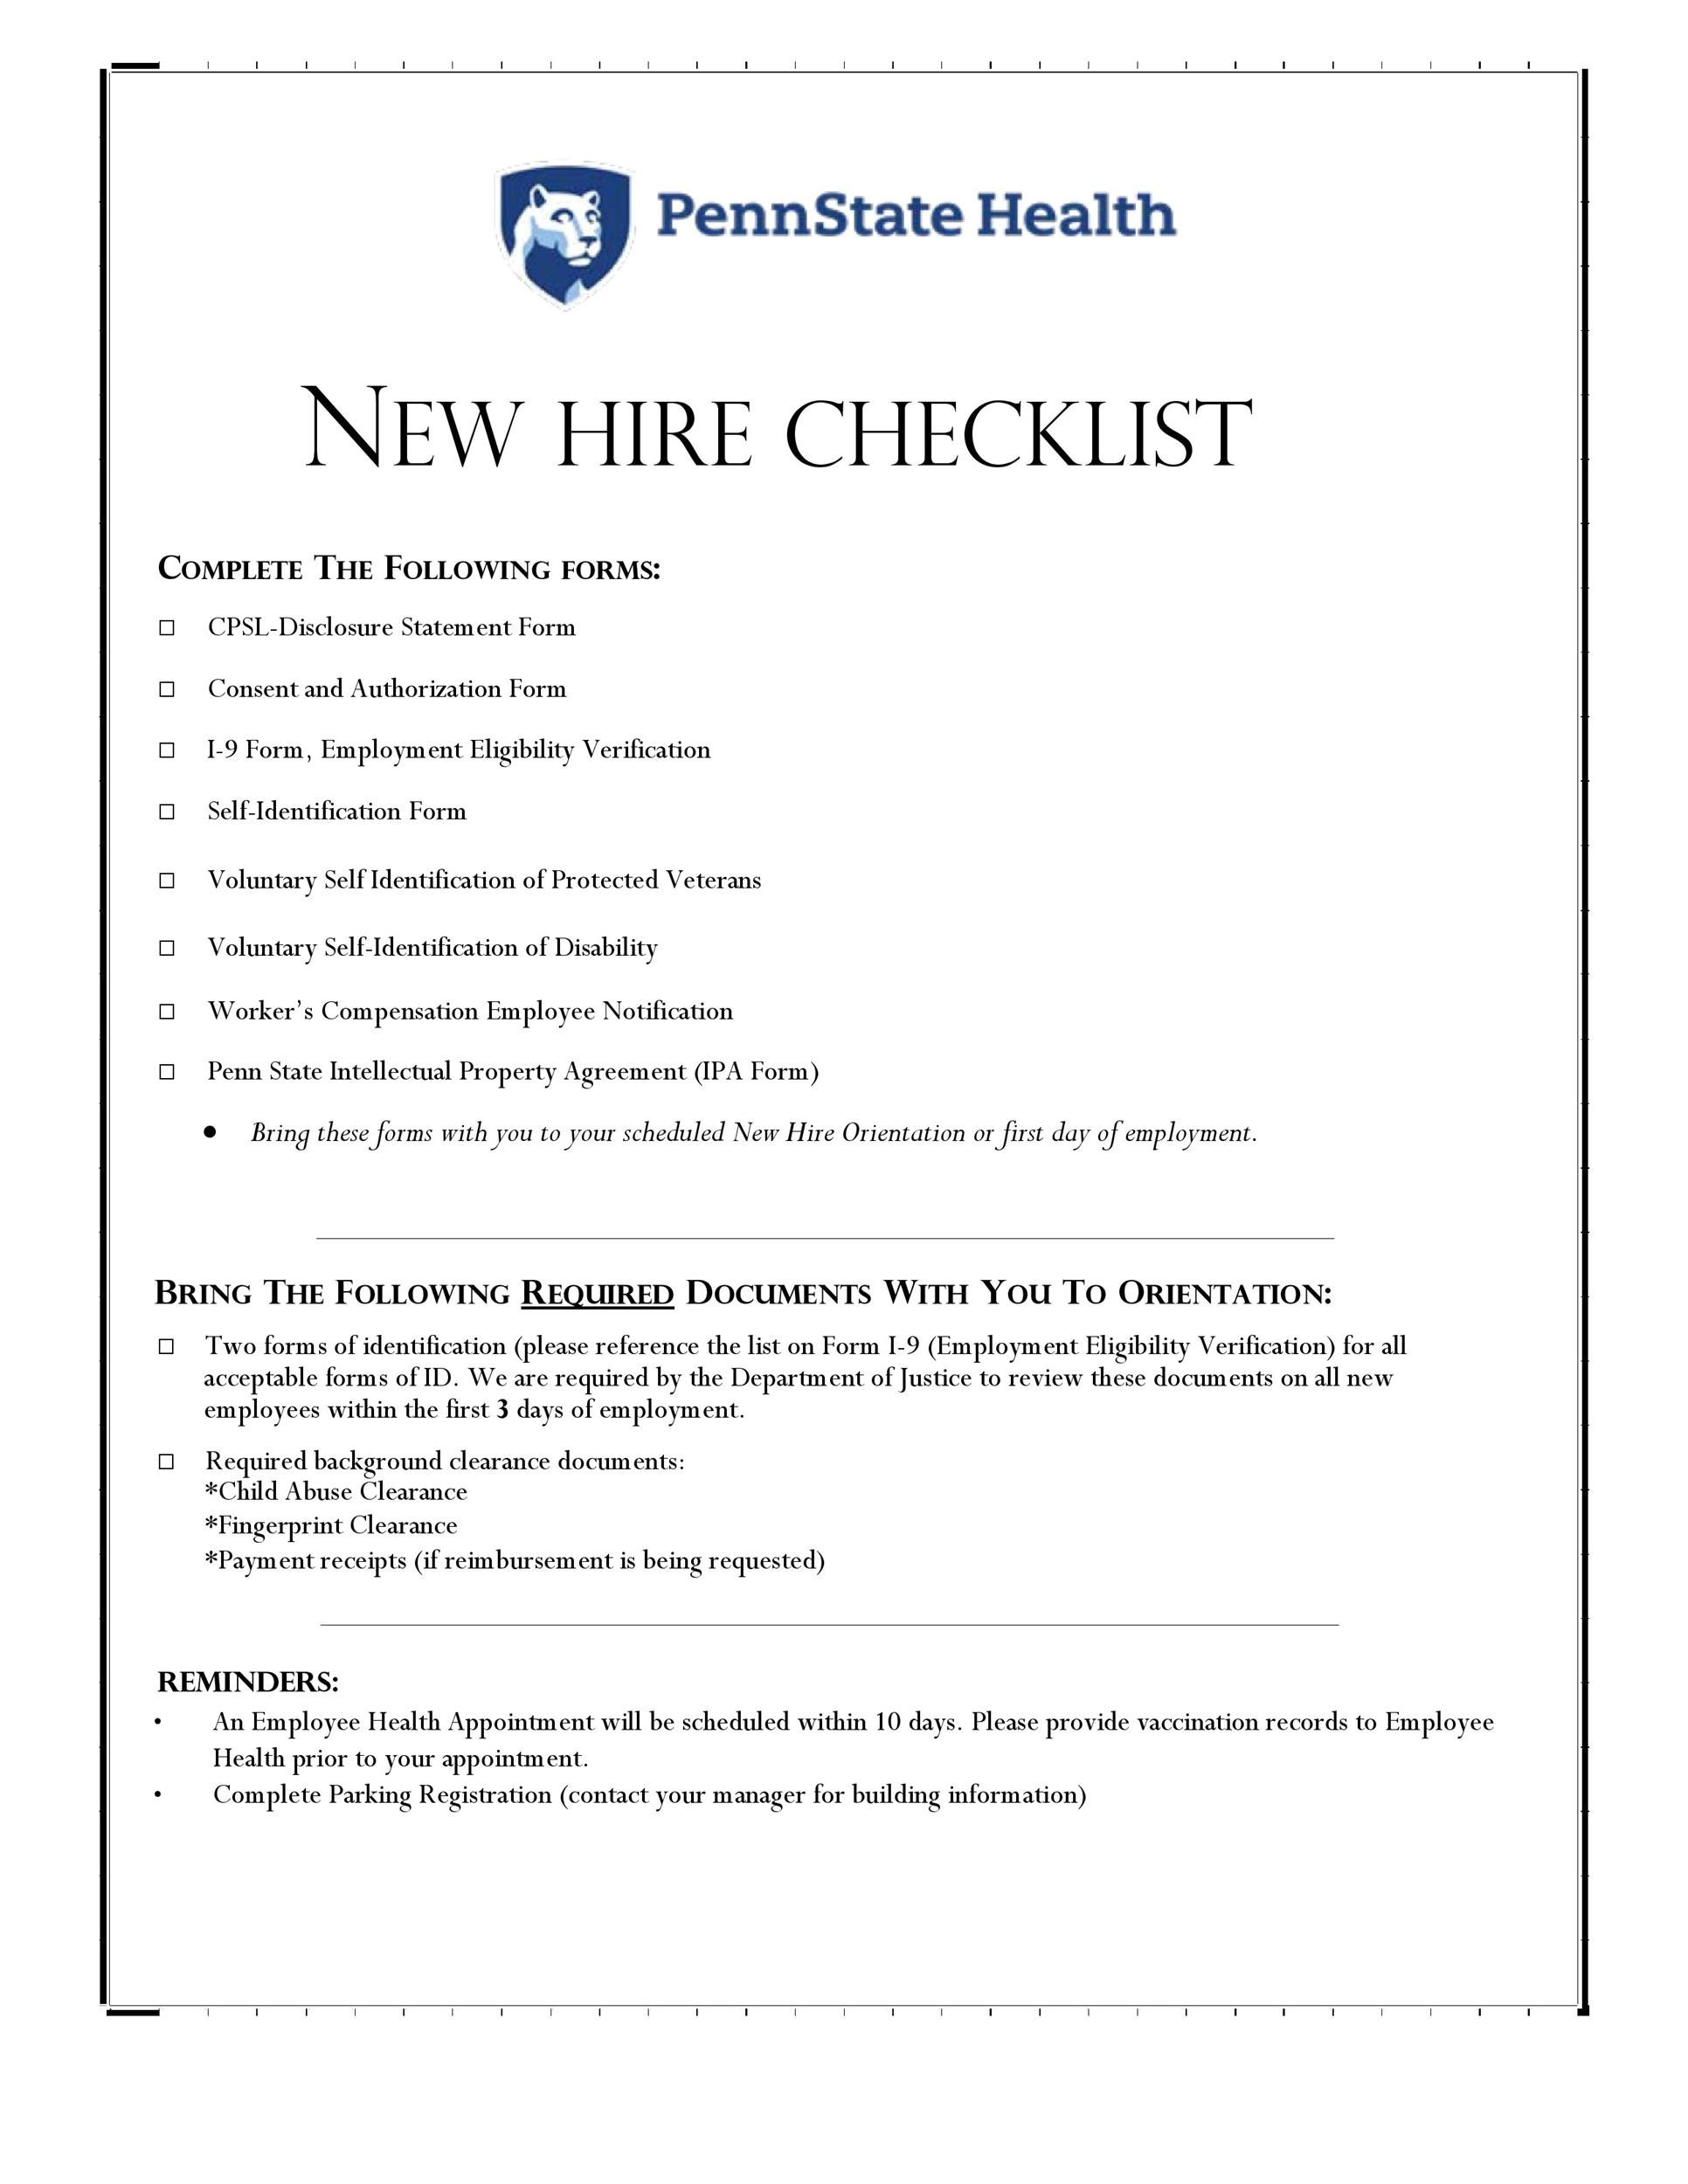 50 Useful New Hire Checklist Templates Forms Á… Templatelab